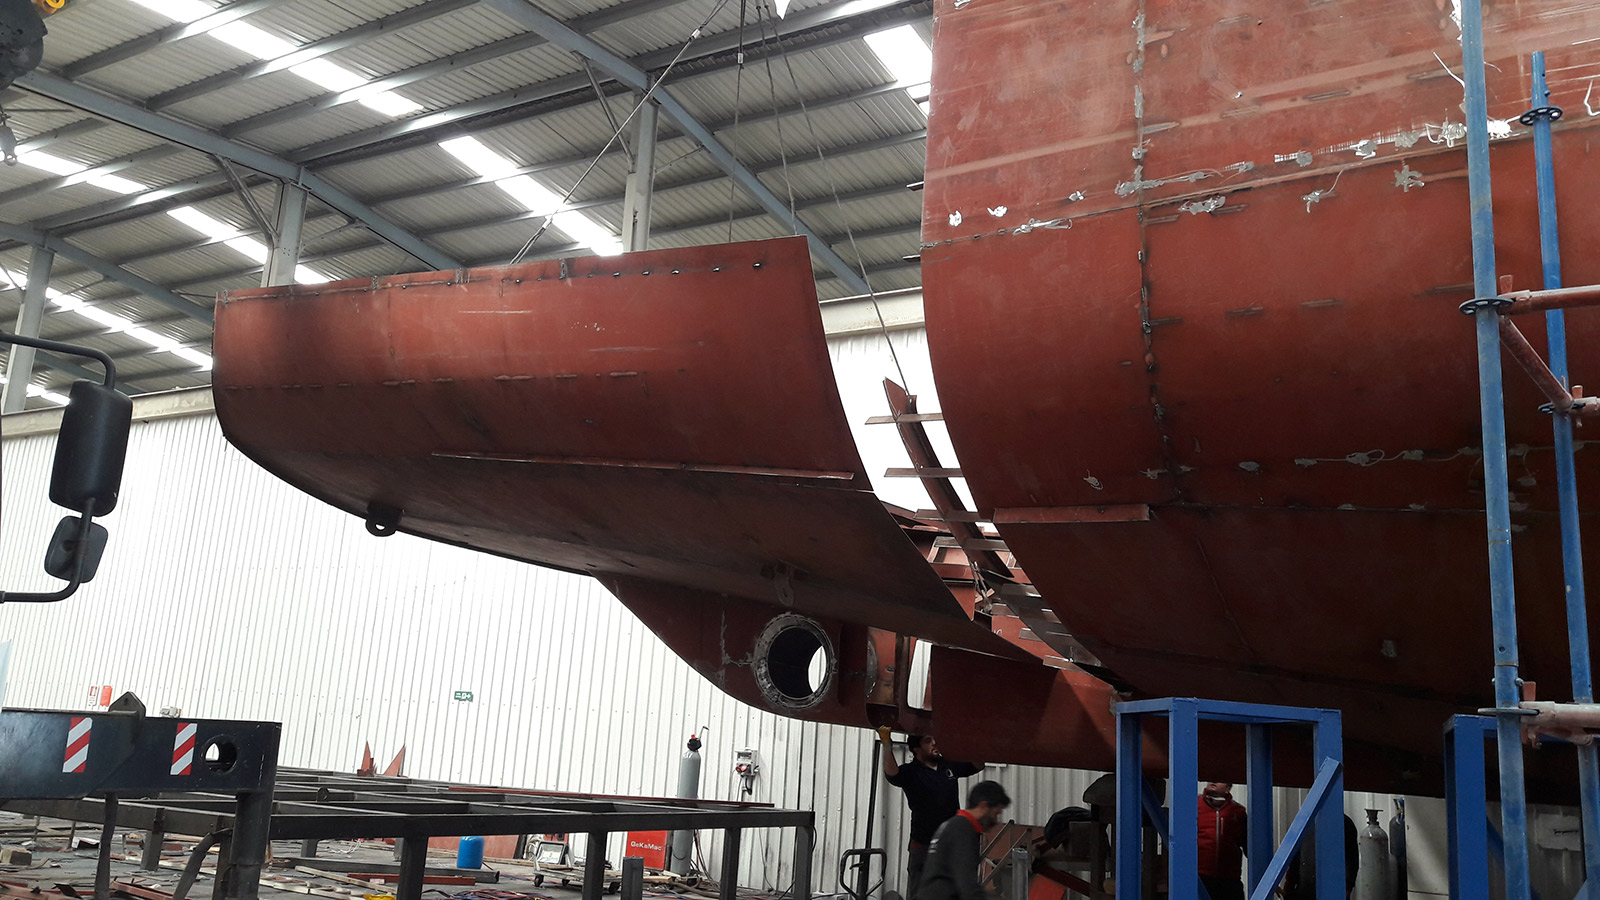 kando-is-being-built-at-ava-yachts-in-the-antalya-free-zone